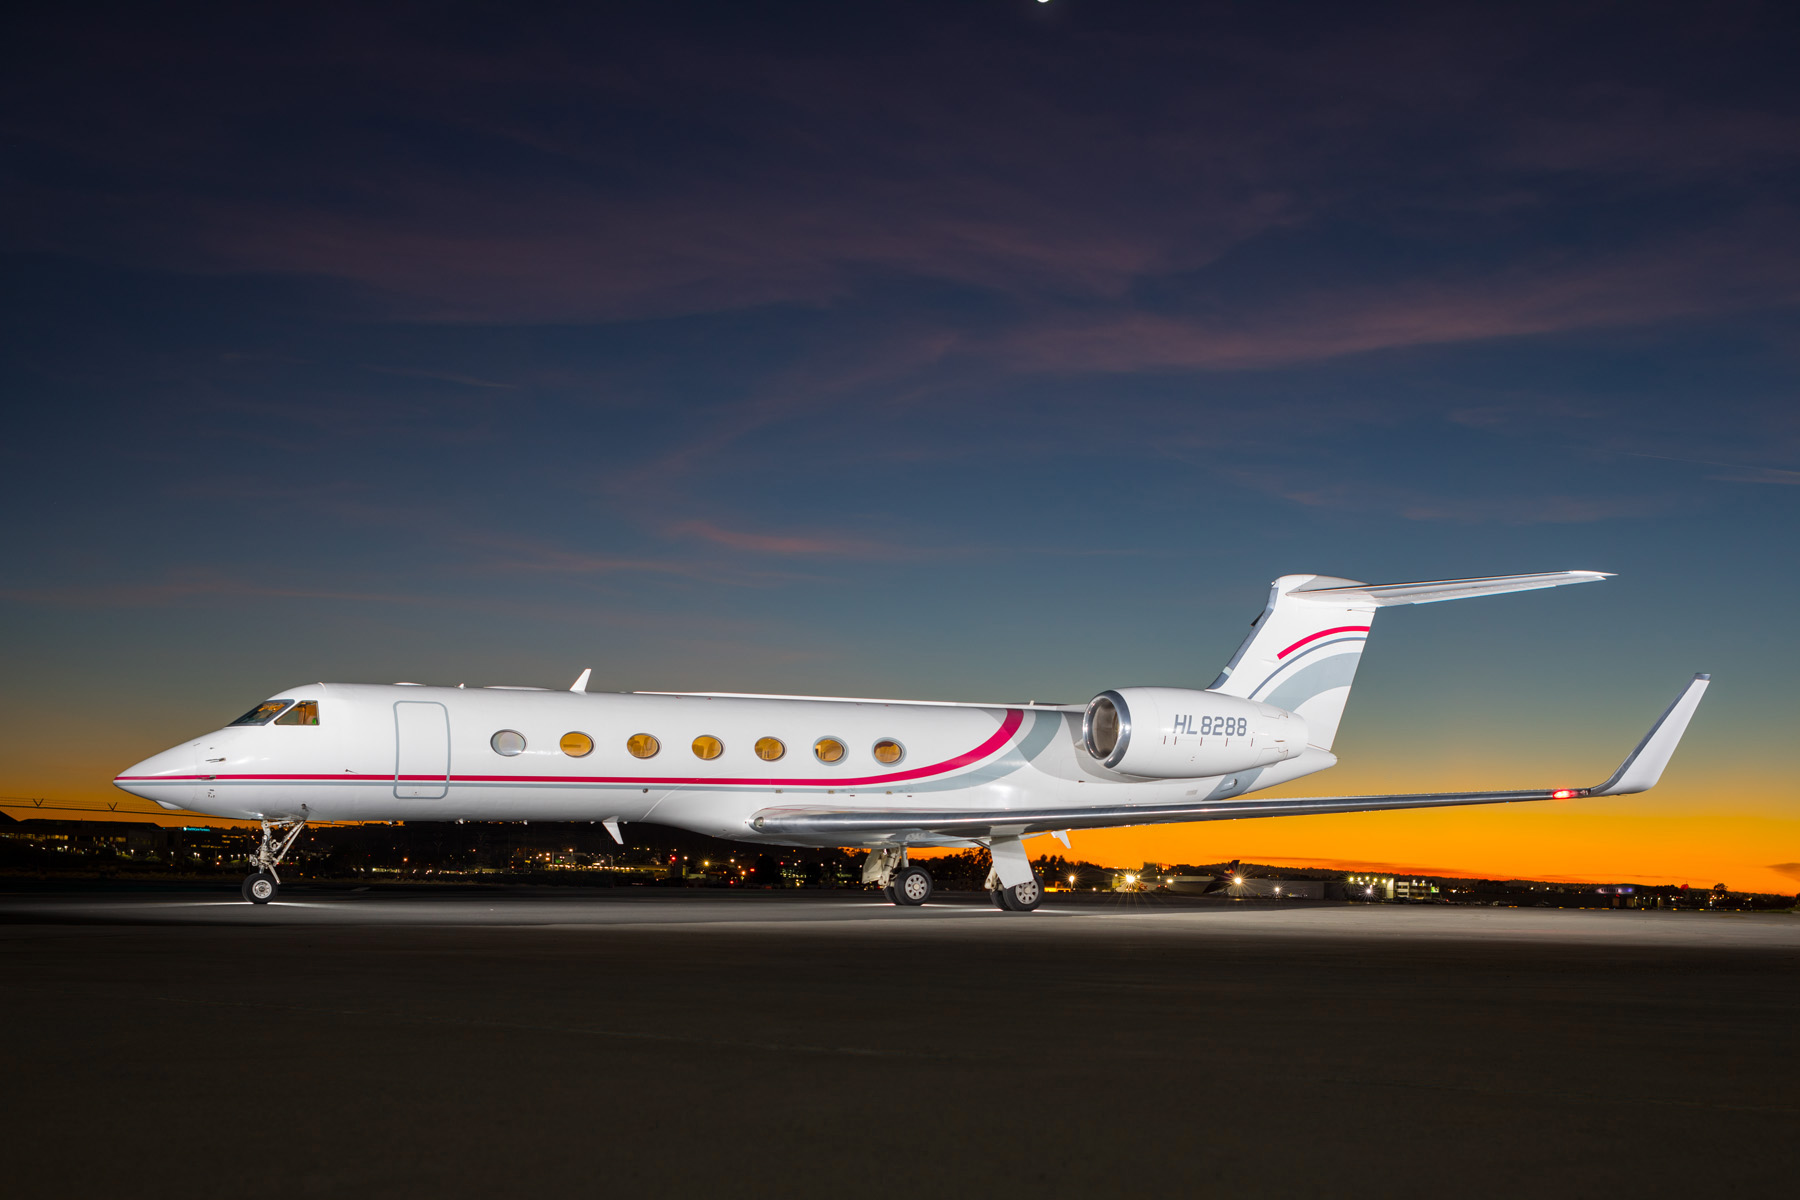 2011 Gulfstream G550 Private Jet For Sale Presented By Jetlistings Com